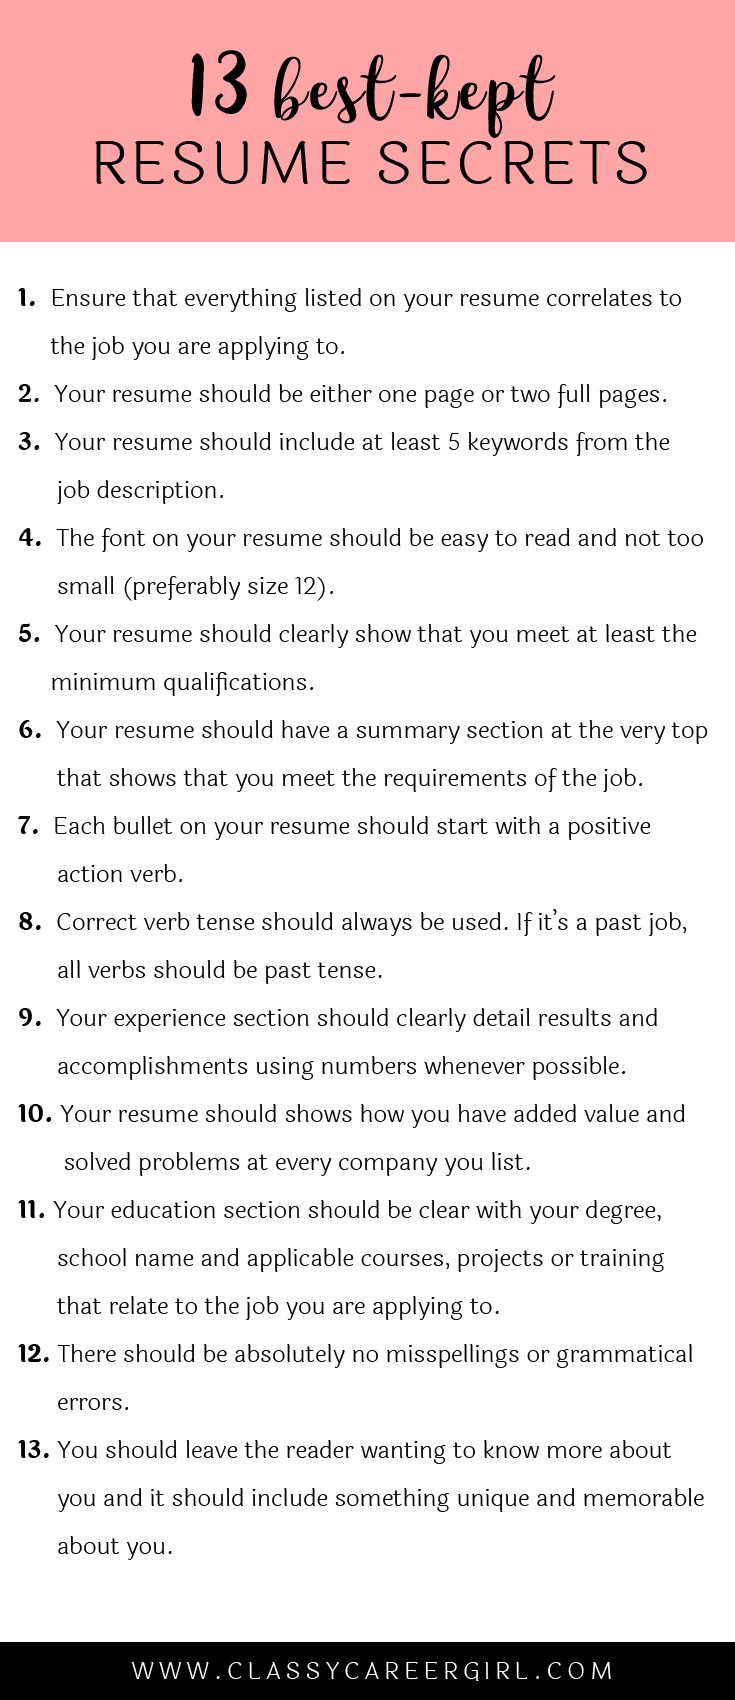 Opposenewapstandardsus  Unique  Ideas About Resume On Pinterest  Cv Format Resume Cv And  With Inspiring Some Hiring Managers Will Toss Your Resume Out If You Dont Know These  With Awesome College Resume Sample Also Business Analyst Sample Resume In Addition Cover Letter Resume Template And Language Skills Resume As Well As Key Qualifications Resume Additionally How To Make A Resume On Microsoft Word From Pinterestcom With Opposenewapstandardsus  Inspiring  Ideas About Resume On Pinterest  Cv Format Resume Cv And  With Awesome Some Hiring Managers Will Toss Your Resume Out If You Dont Know These  And Unique College Resume Sample Also Business Analyst Sample Resume In Addition Cover Letter Resume Template From Pinterestcom